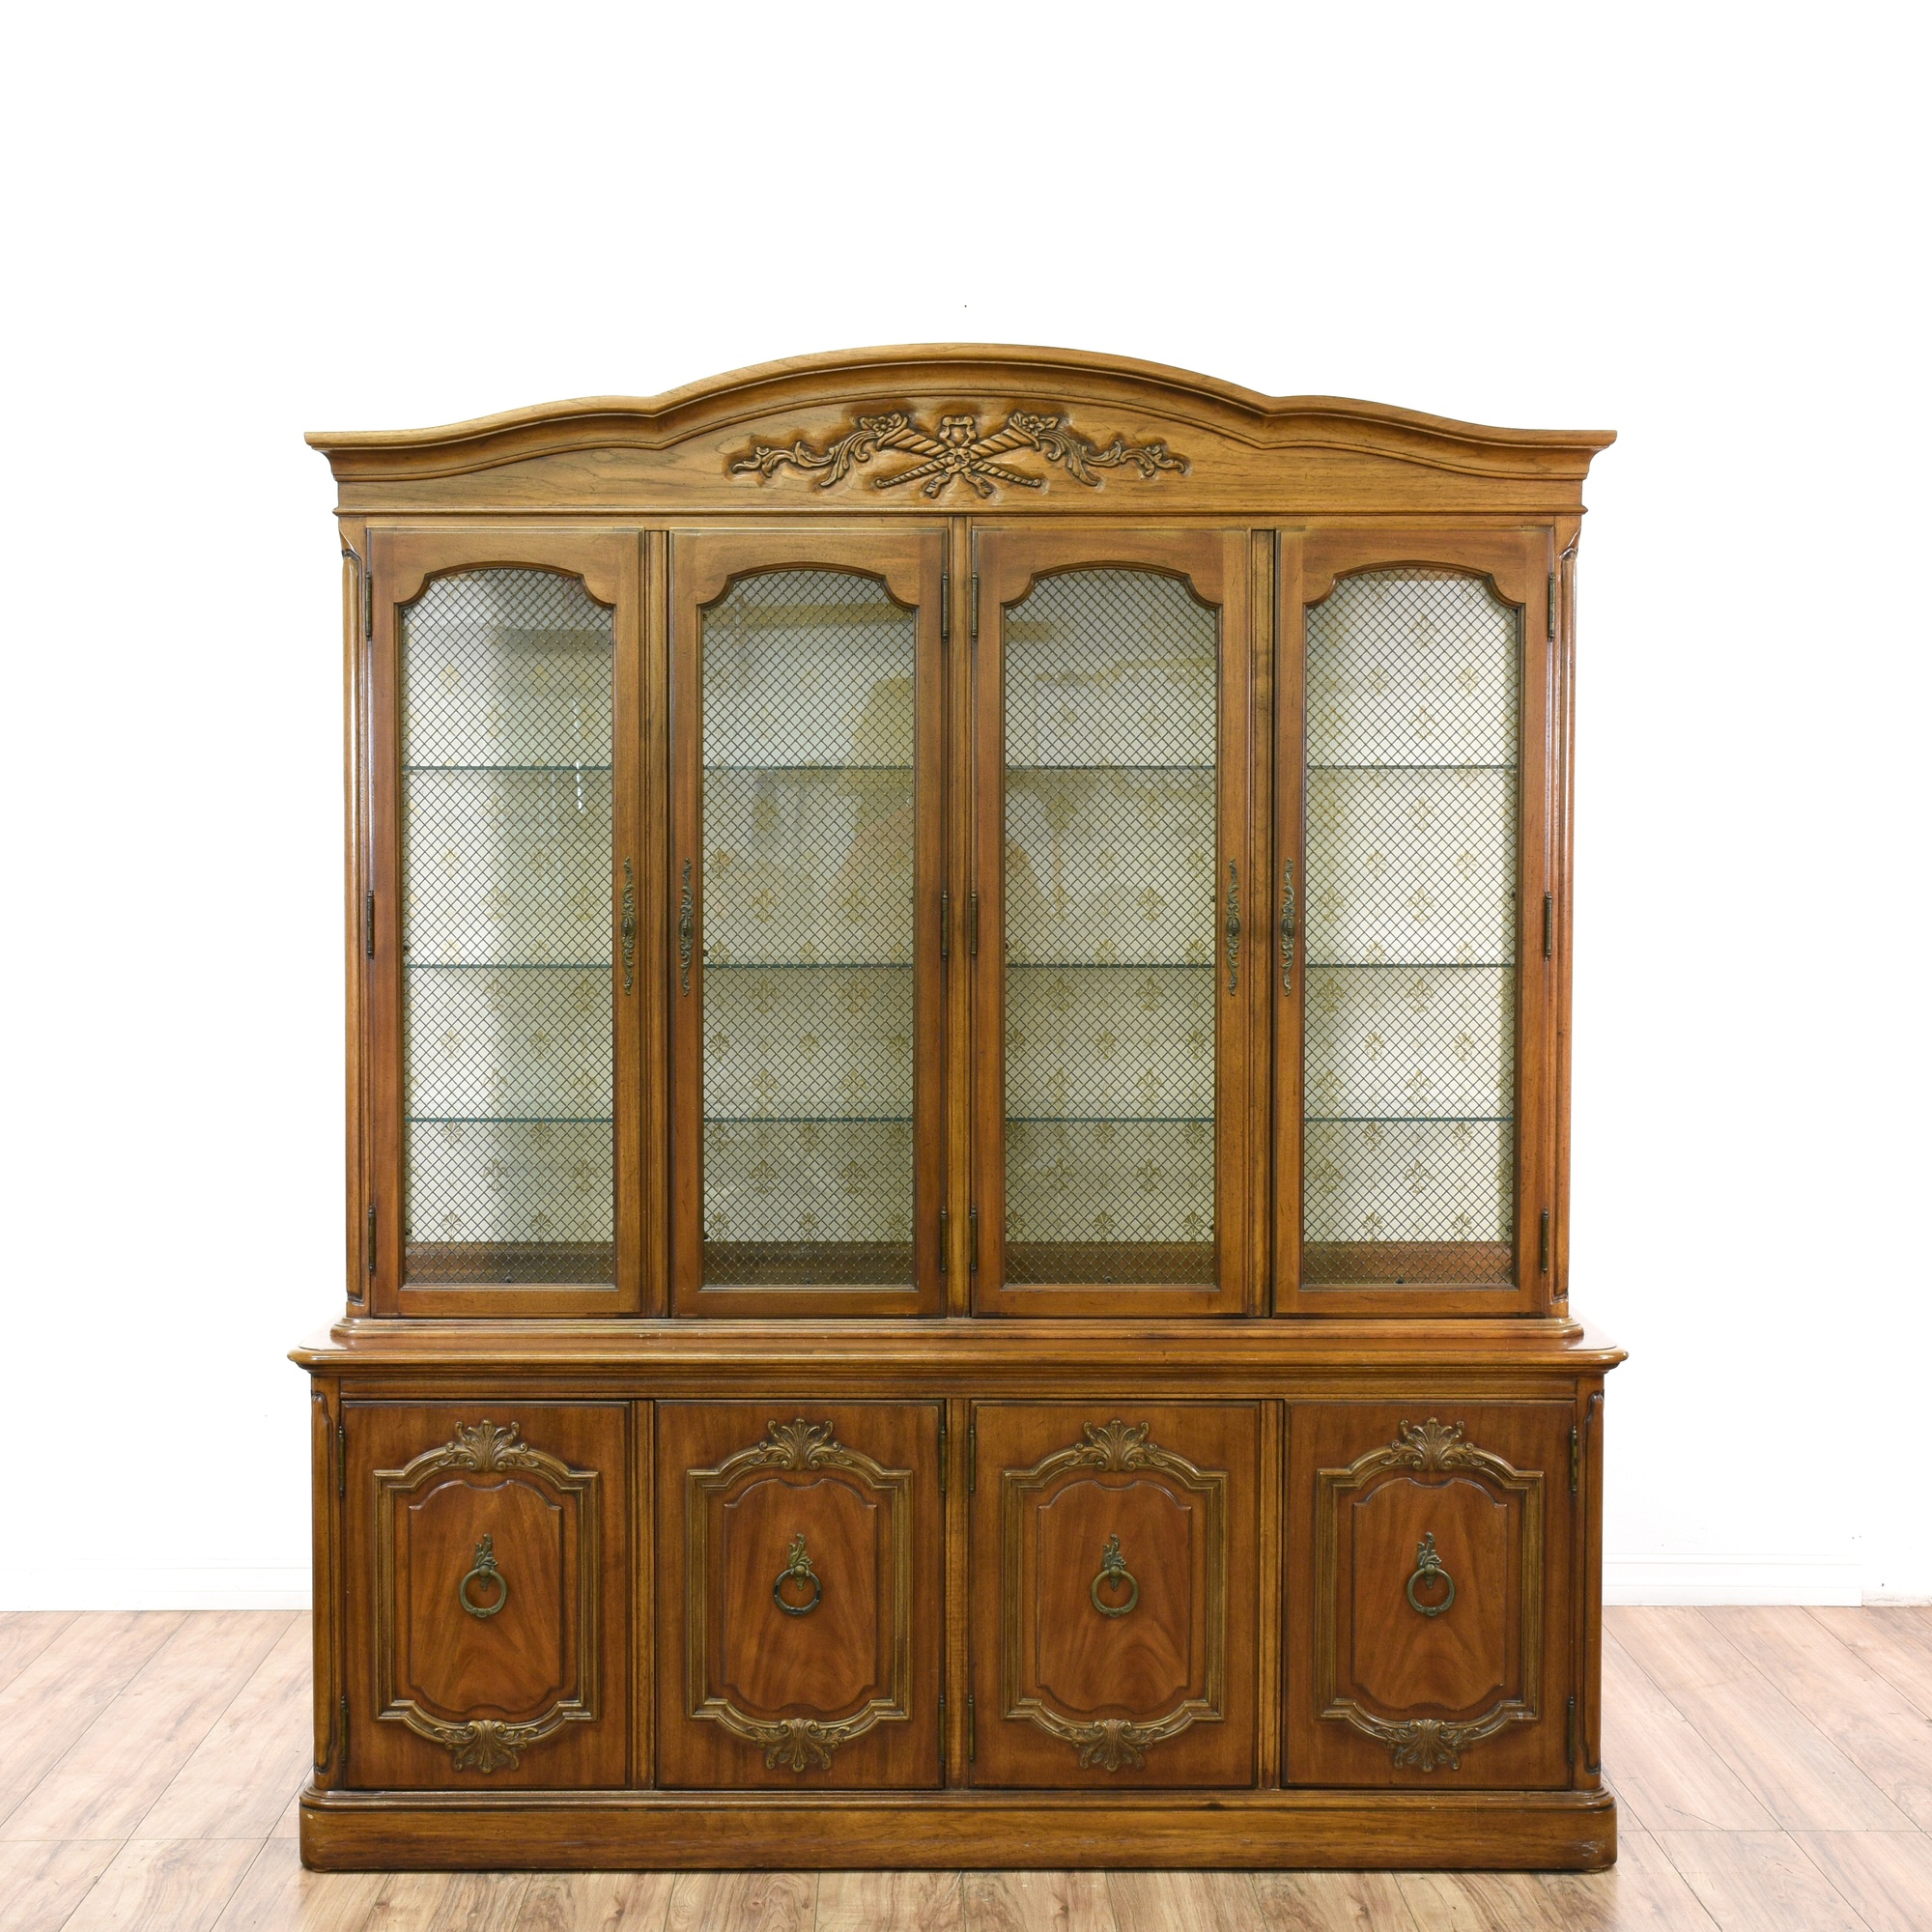 Quot Thomasville Quot Carved Oak China Cabinet Display Loveseat Vintage Furniture San Diego Amp Los Angeles